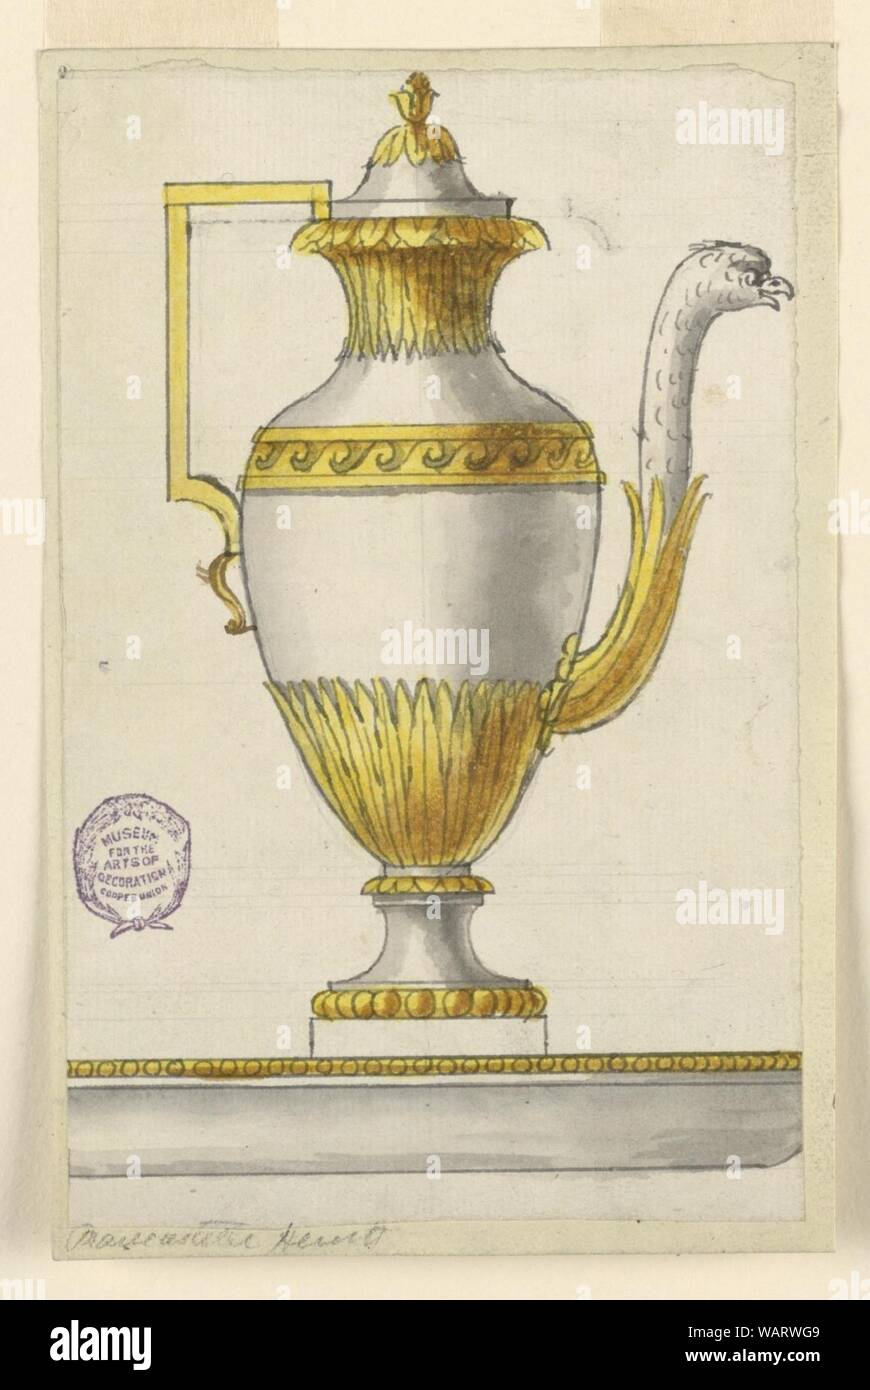 Drawing, Project for an Ewer and Basin, ca. 1800 Stock Photo